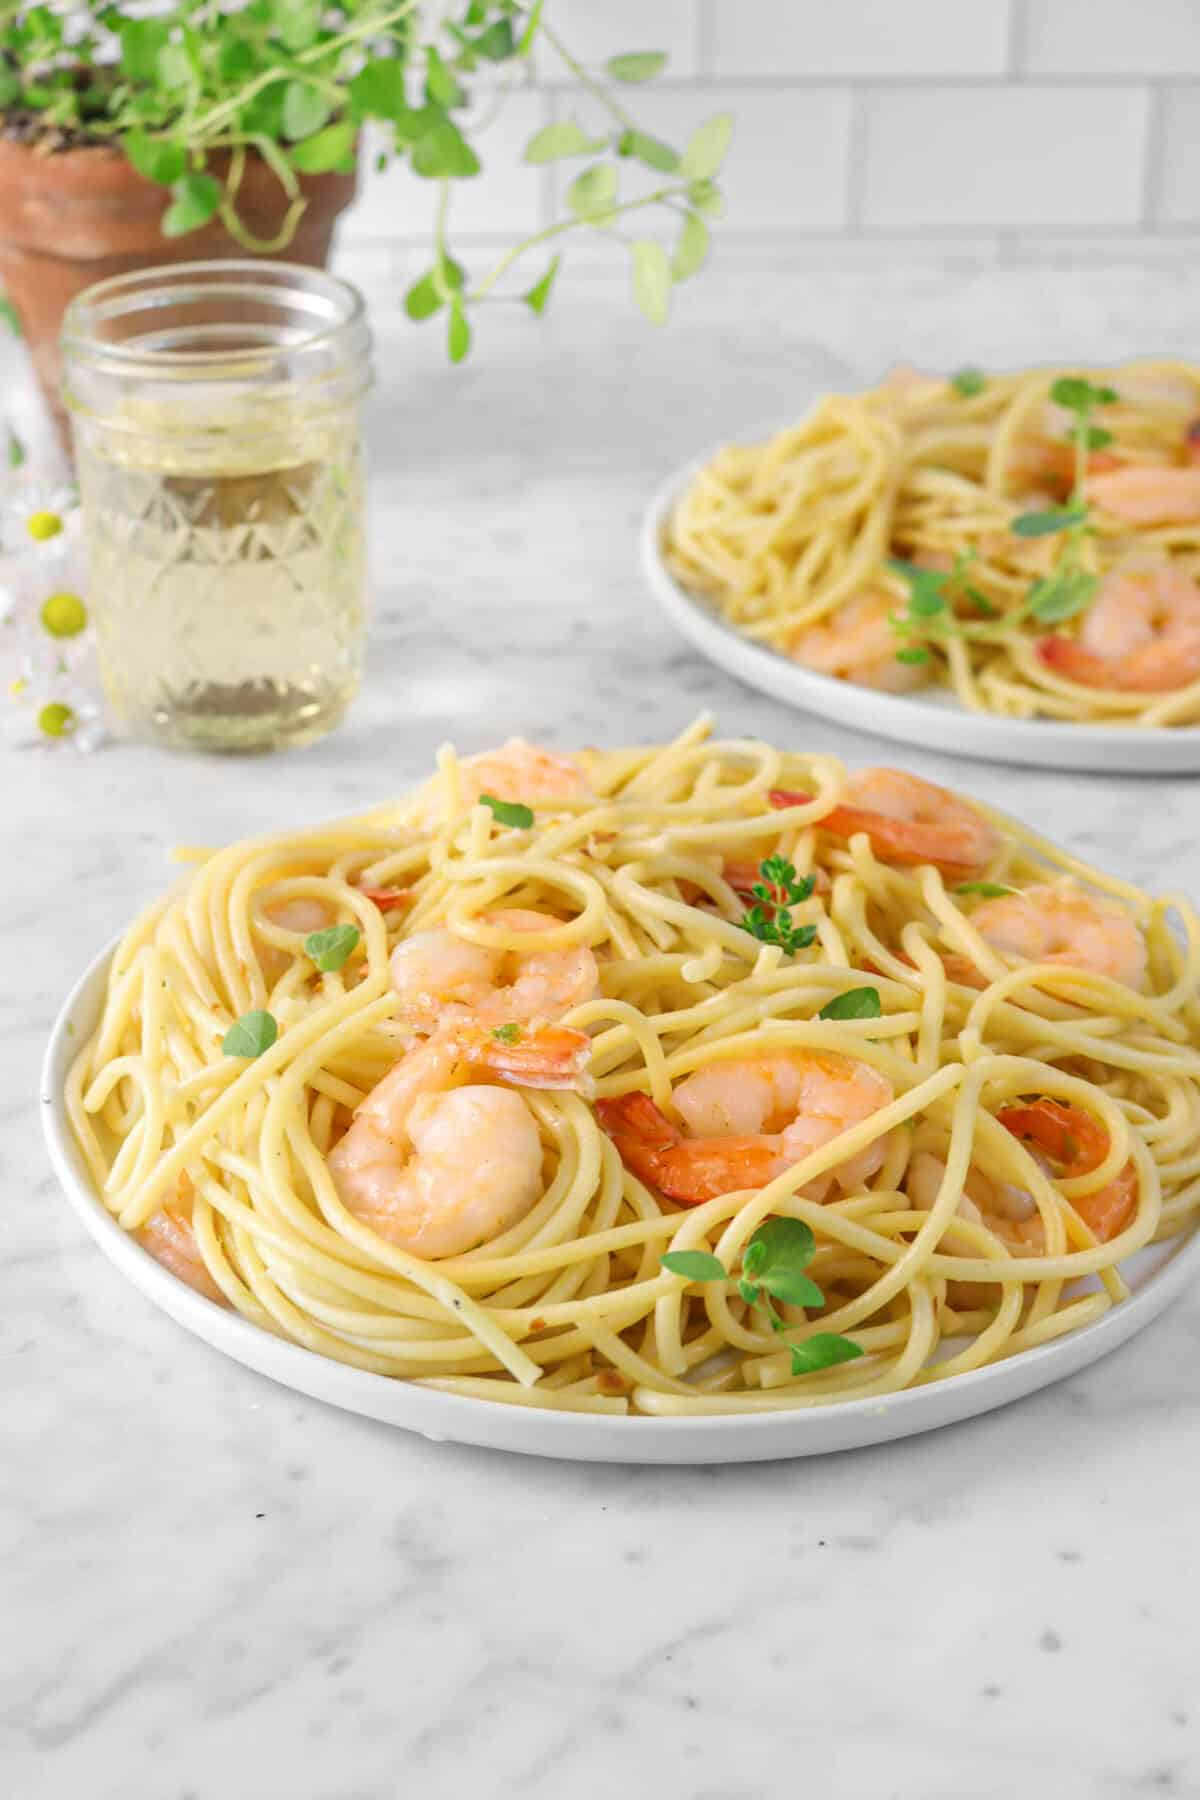 shrimp scampi on two white plates with a jar of white wine, flowers, and oregano